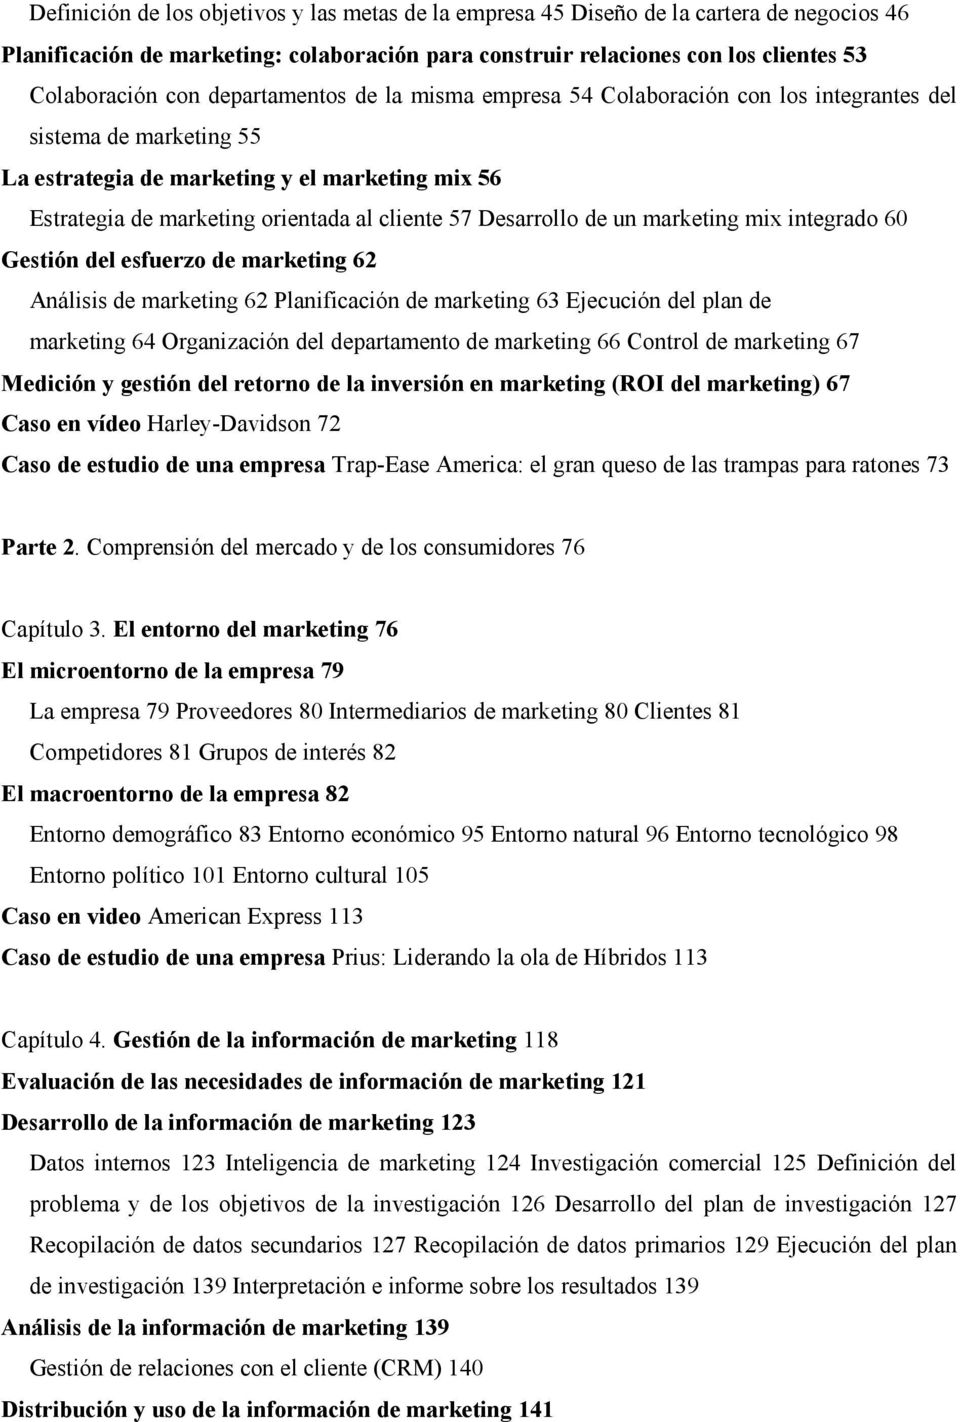 Desarrollo de un marketing mix integrado 60 Gestión del esfuerzo de marketing 62 Análisis de marketing 62 Planificación de marketing 63 Ejecución del plan de marketing 64 Organización del